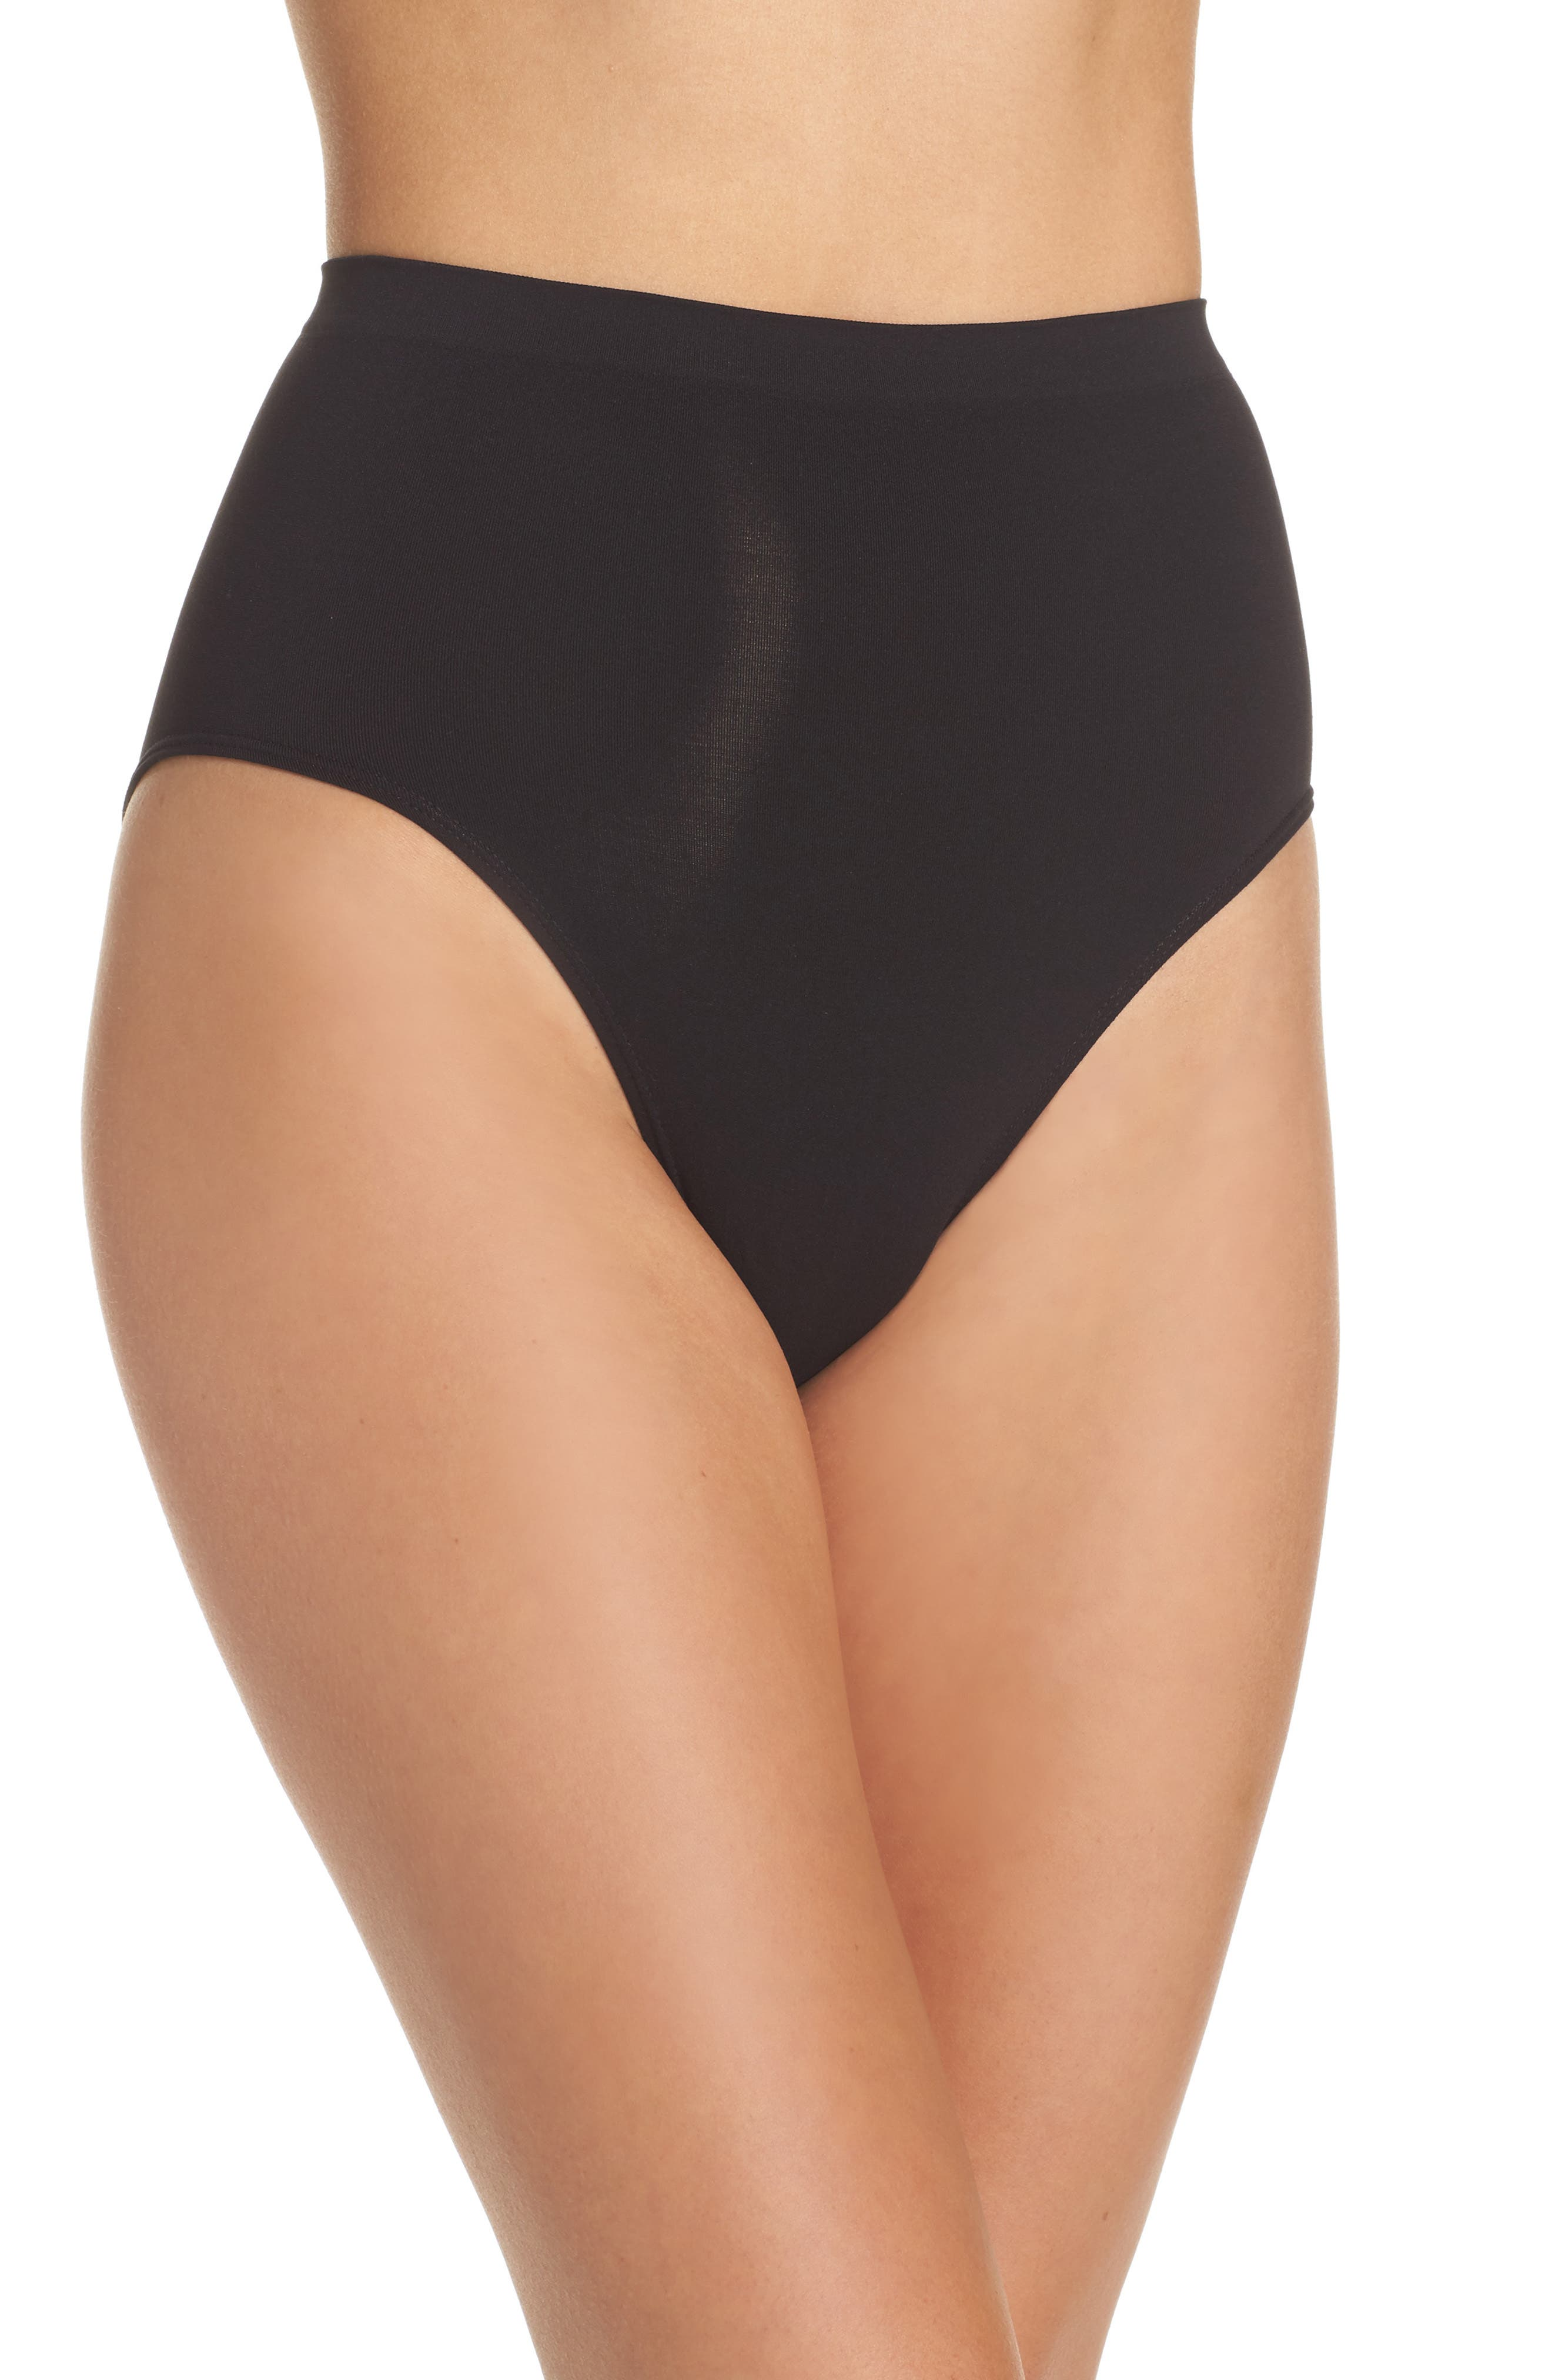 Alternate Image 1 Selected - Halogen® High Waist Seamless Briefs (3 for $33)